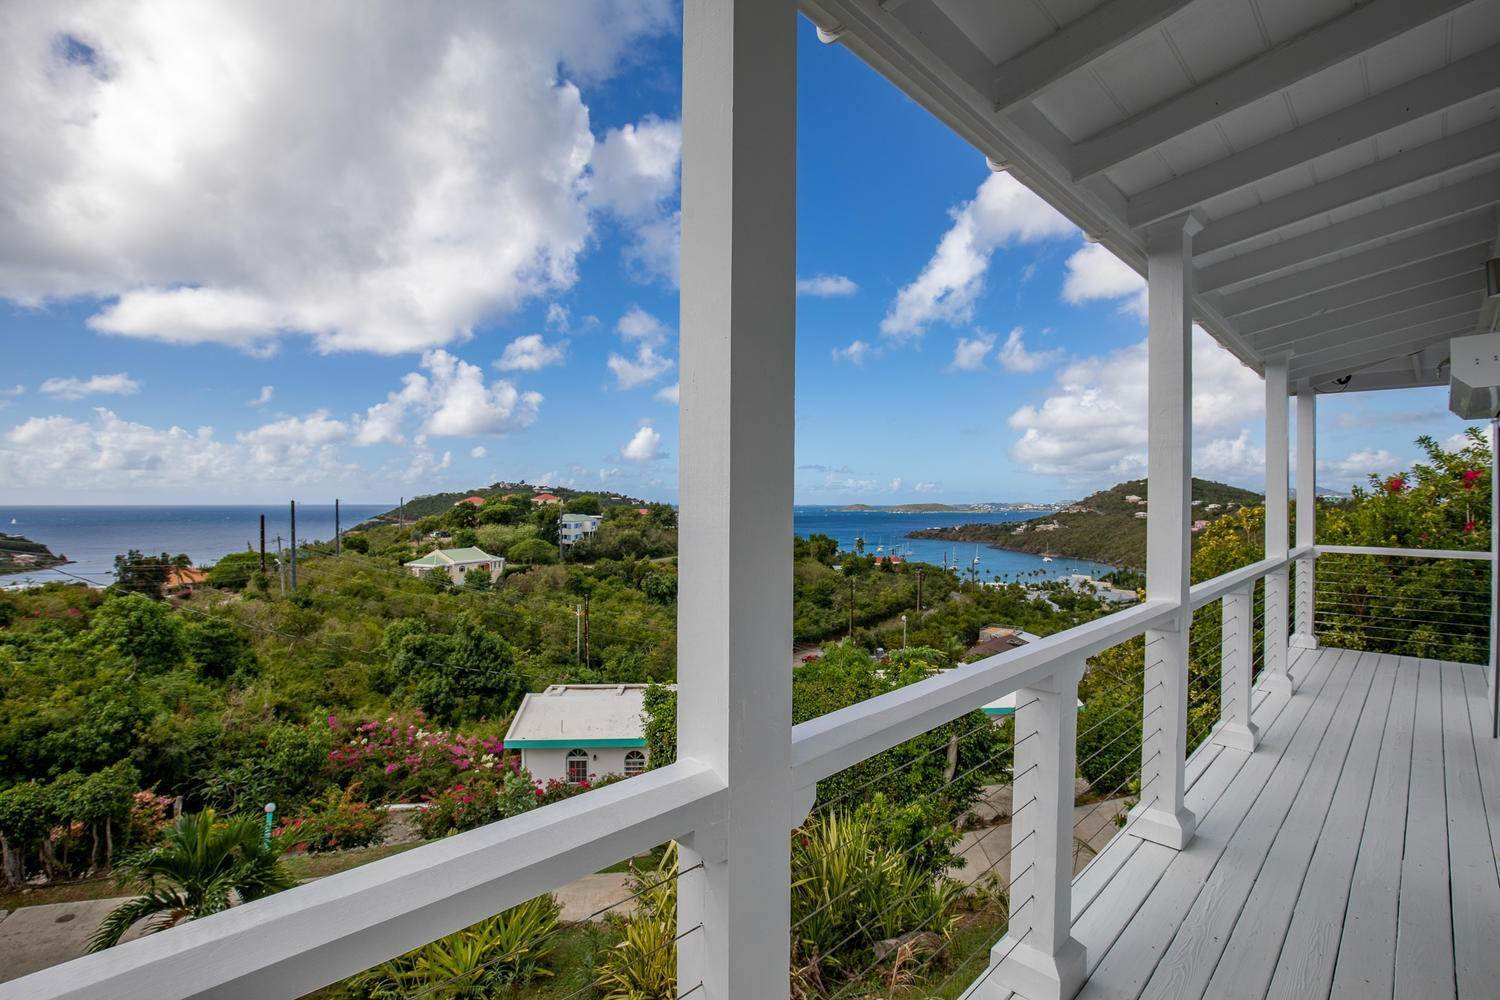 64. Single Family Home pour l à vendre à 211& 211 A Chocolate Hole Cruz Bay St John, Virgin Islands,00830 Isles Vierges Américaines